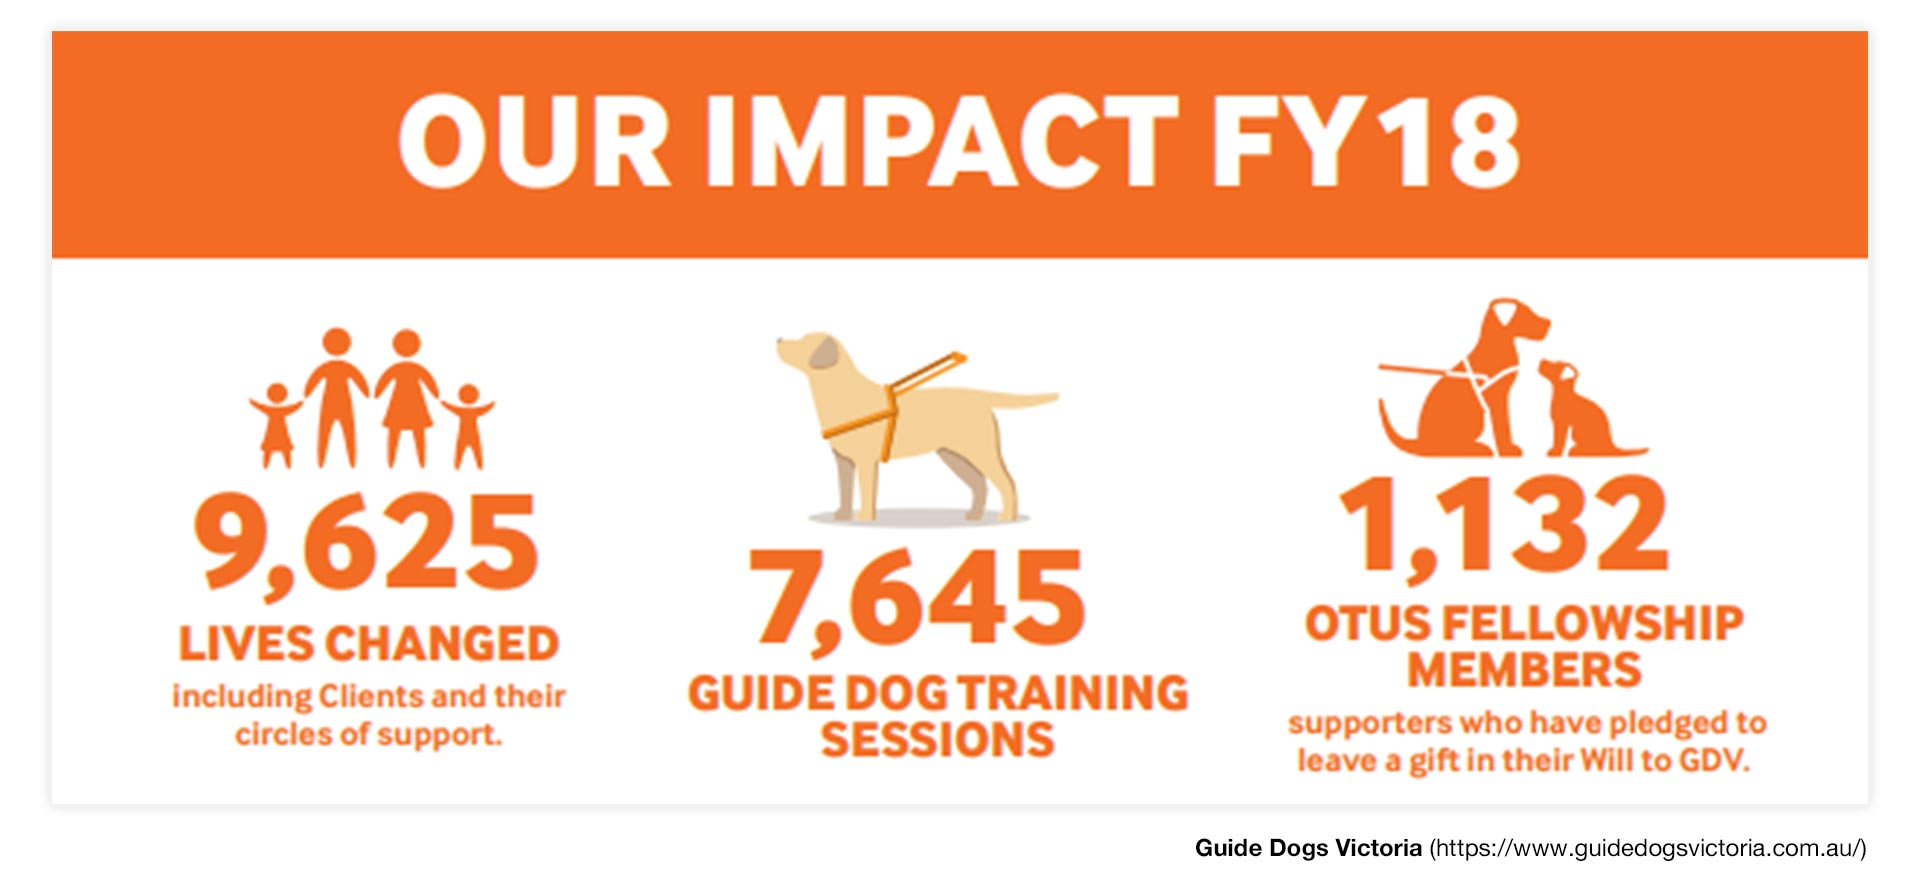 7,645 Guide Dogs Training Session